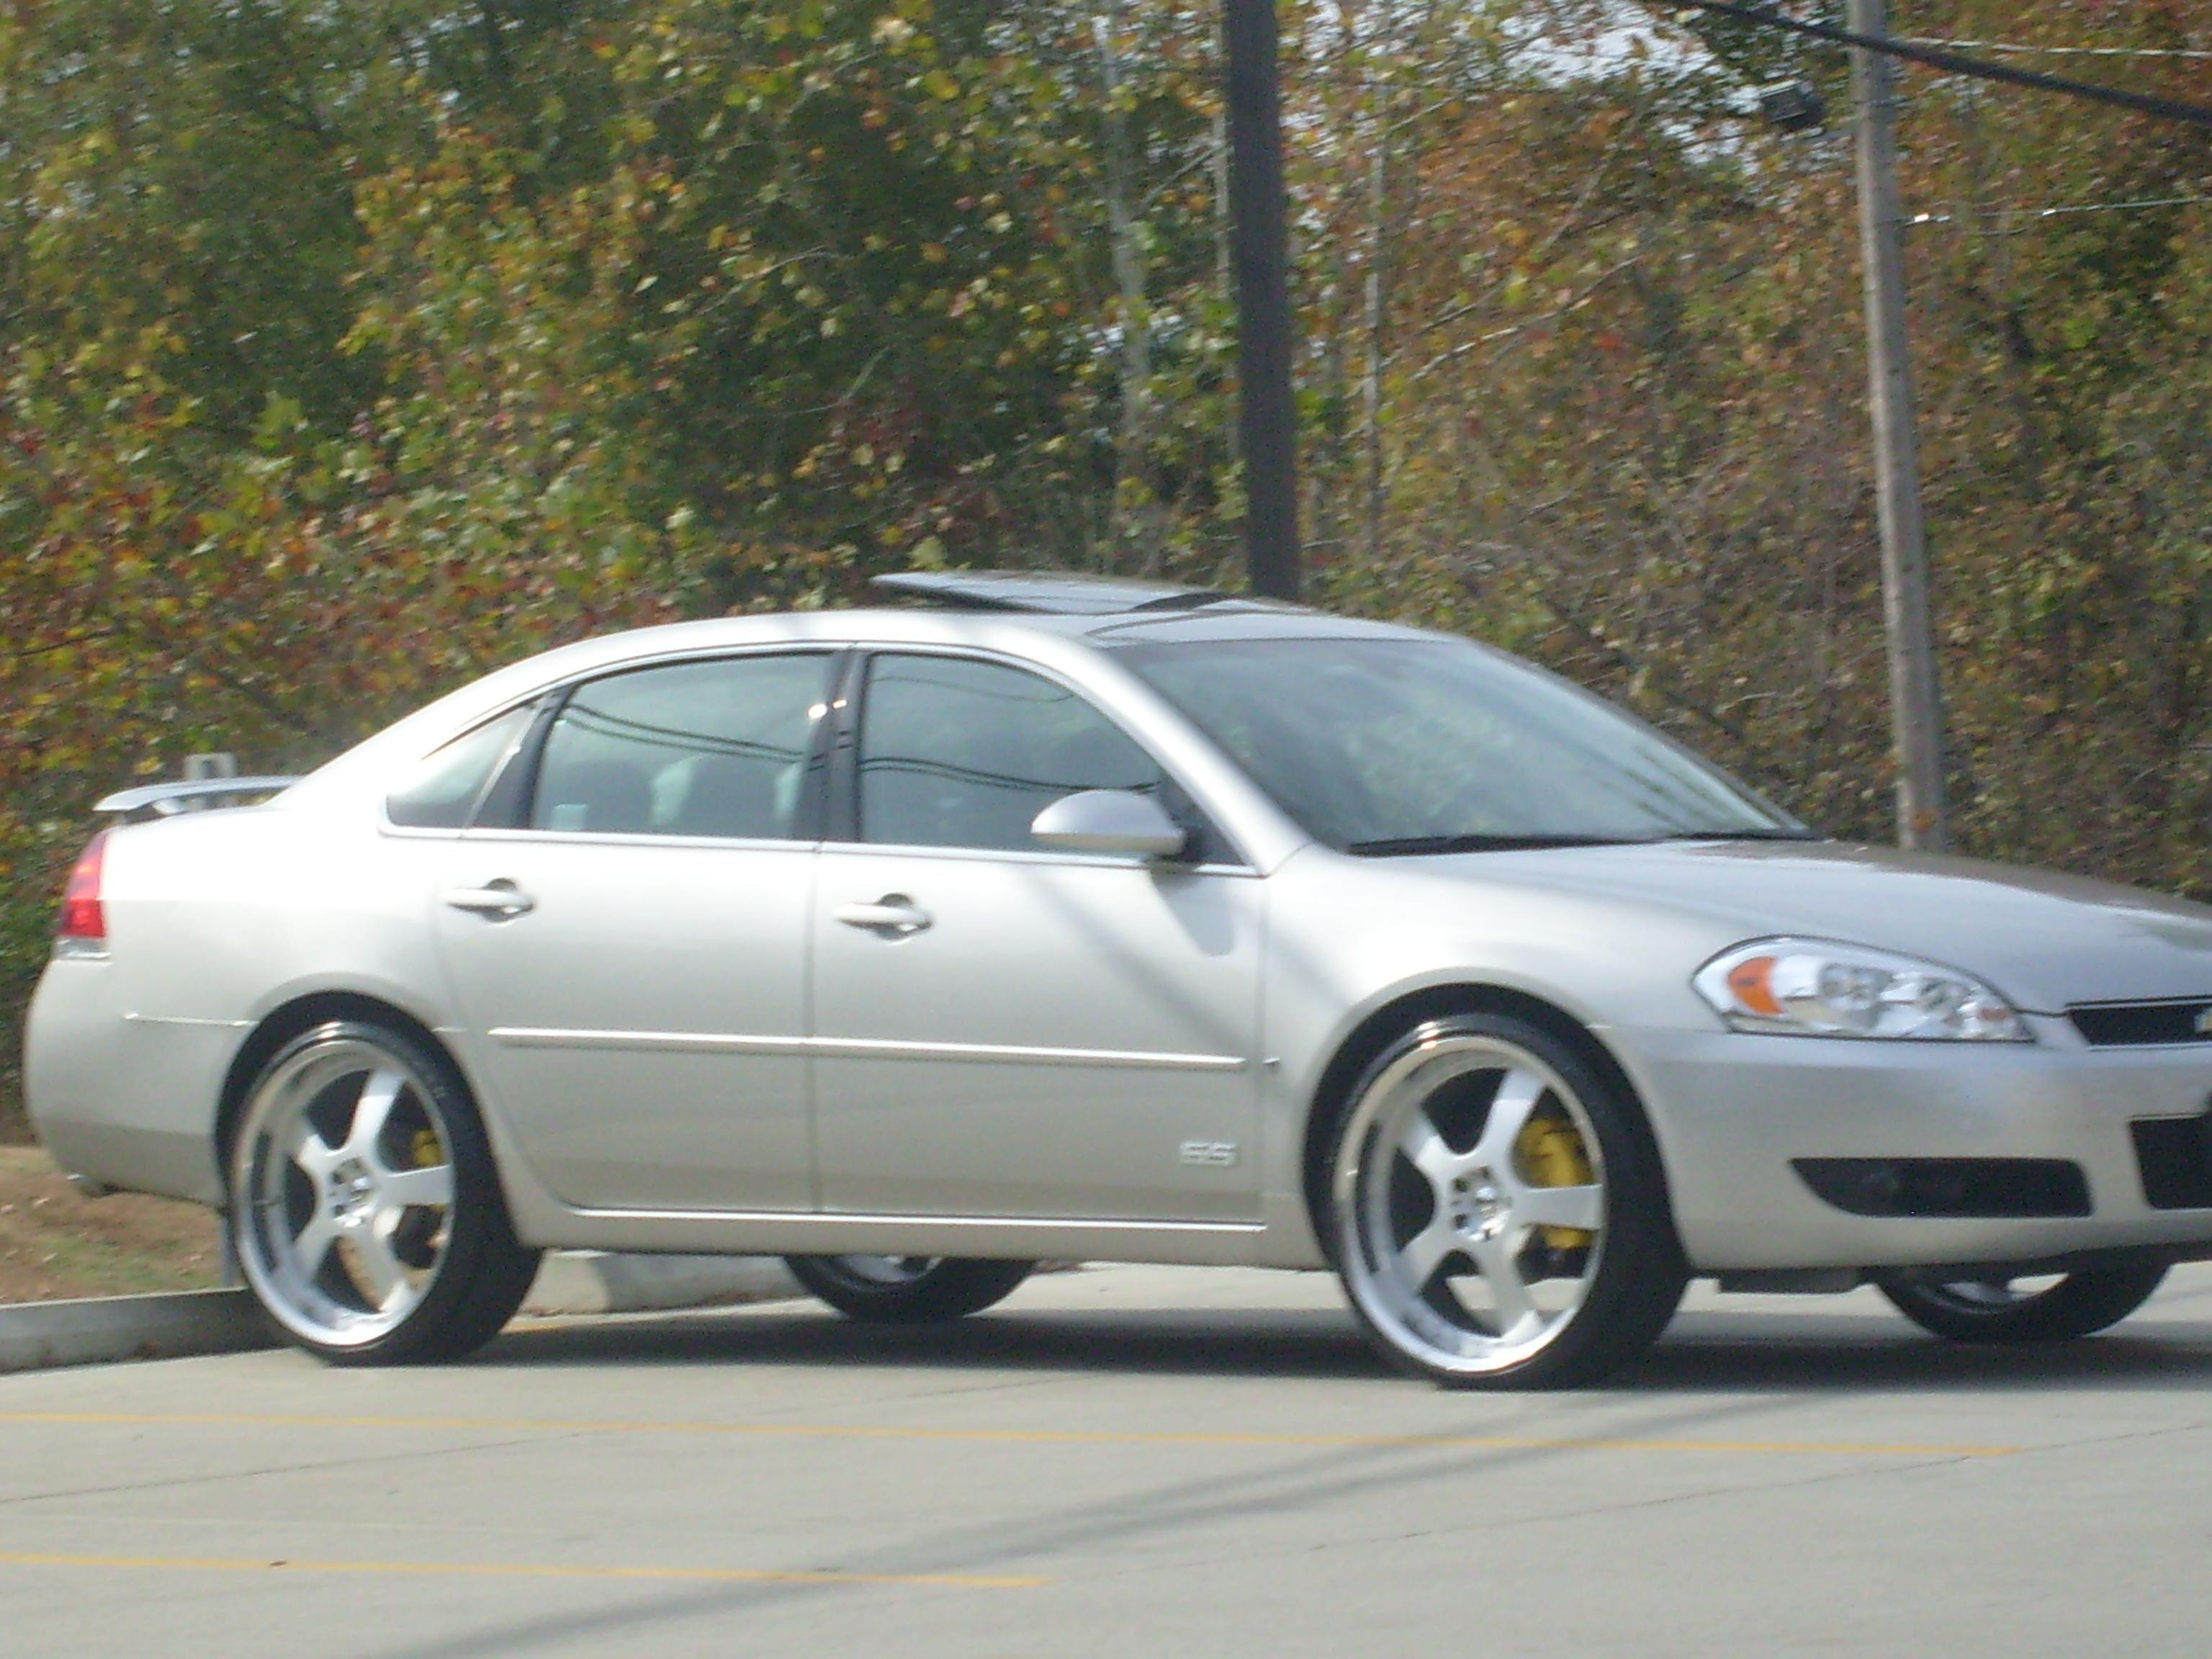 Impala Ss 2008 With Rims